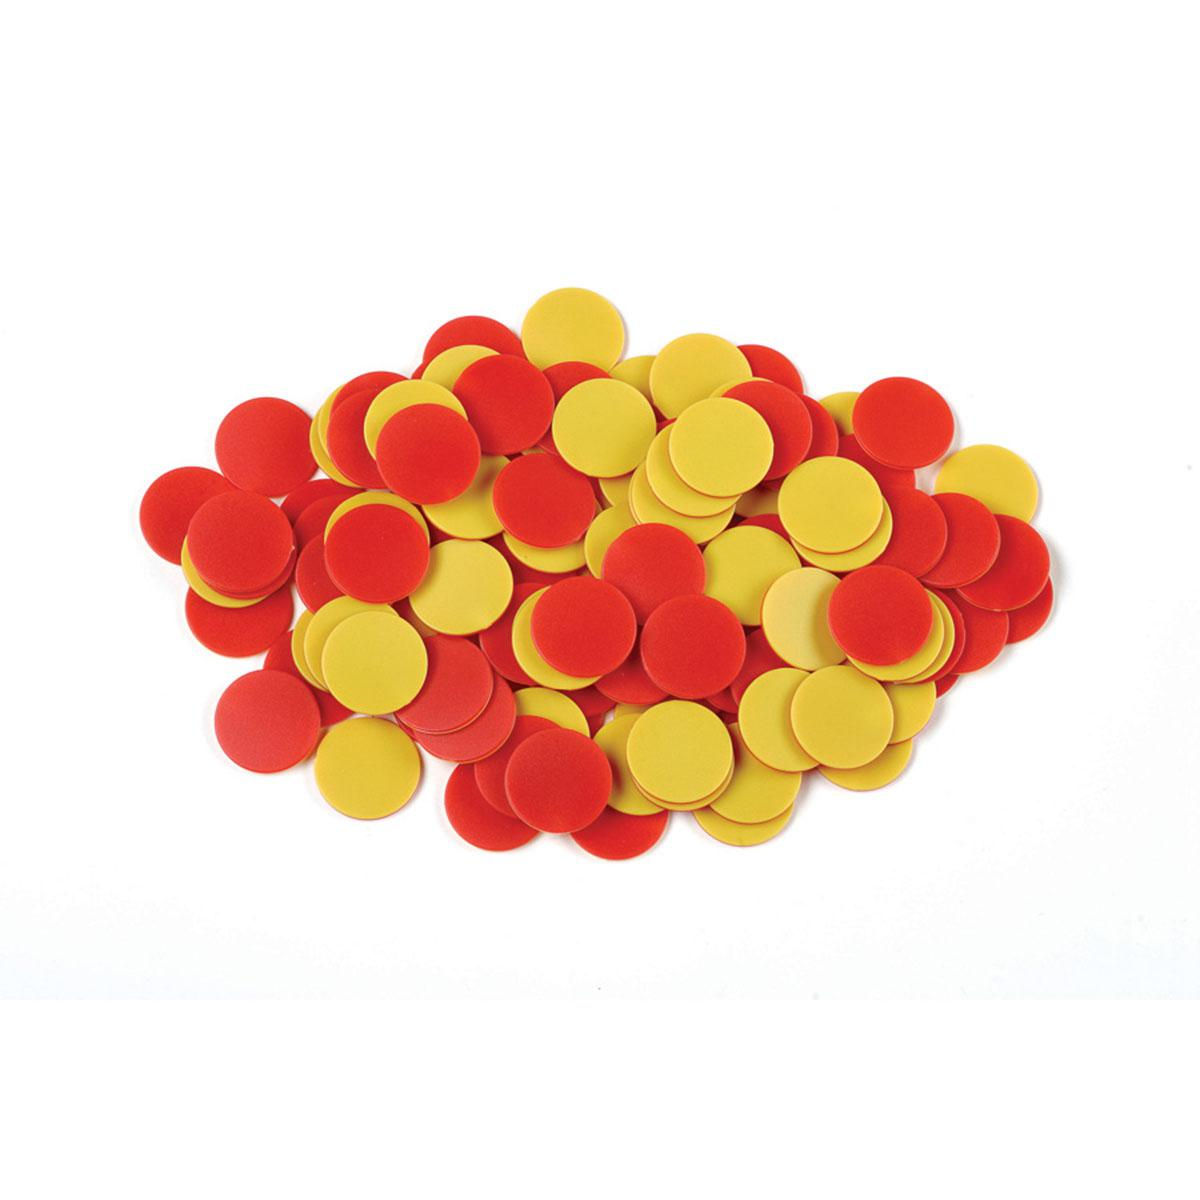 Two-Color Counters Set of 2000